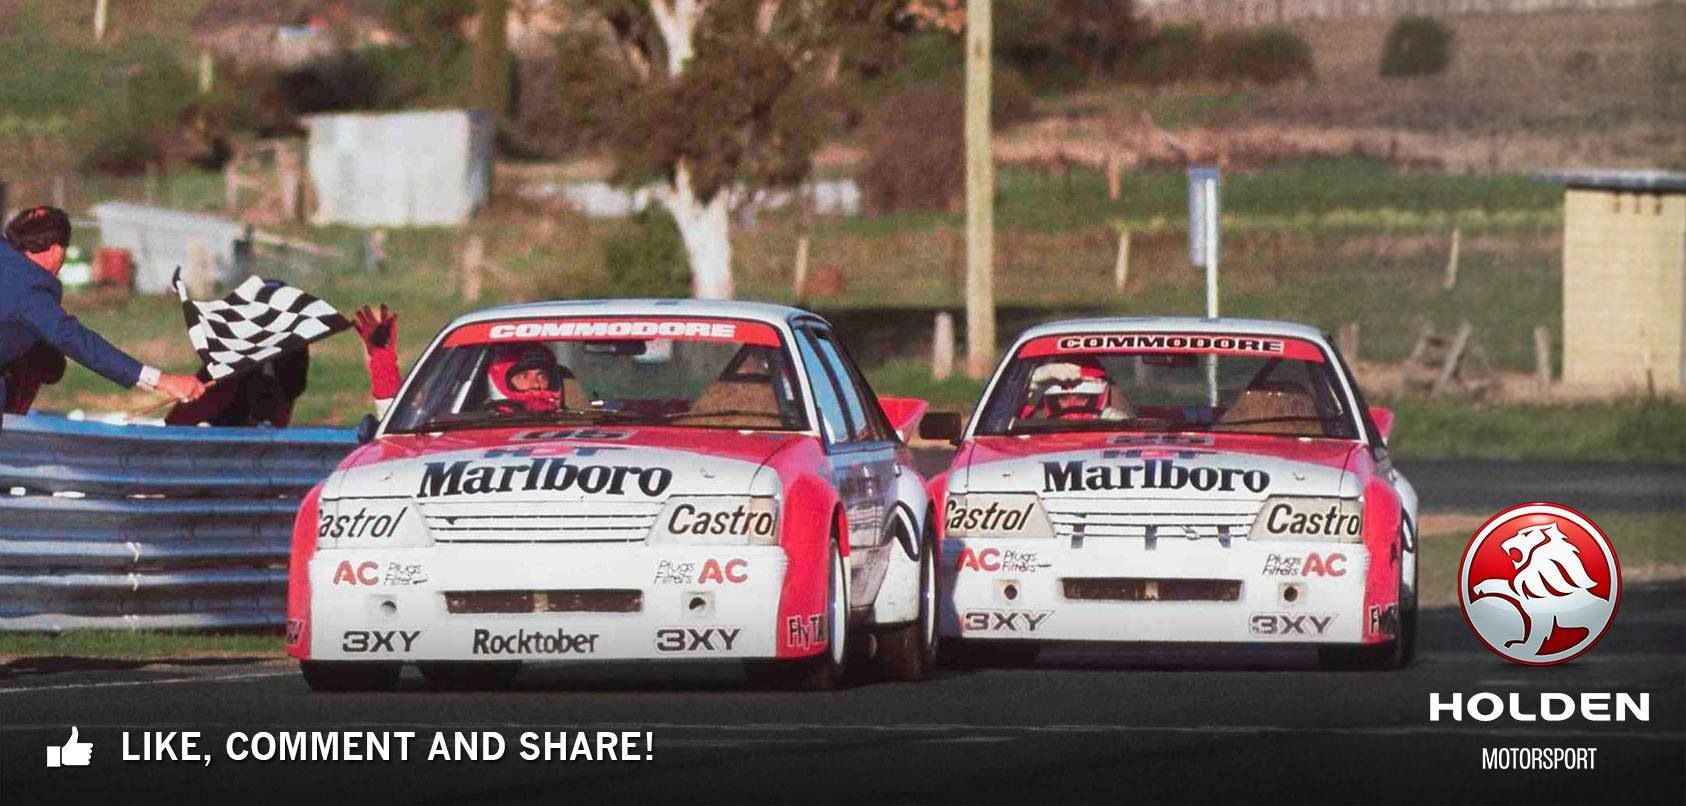 peter brock and larry perkins bathurst 1000 1984 winners both legends of the mountain imagine. Black Bedroom Furniture Sets. Home Design Ideas